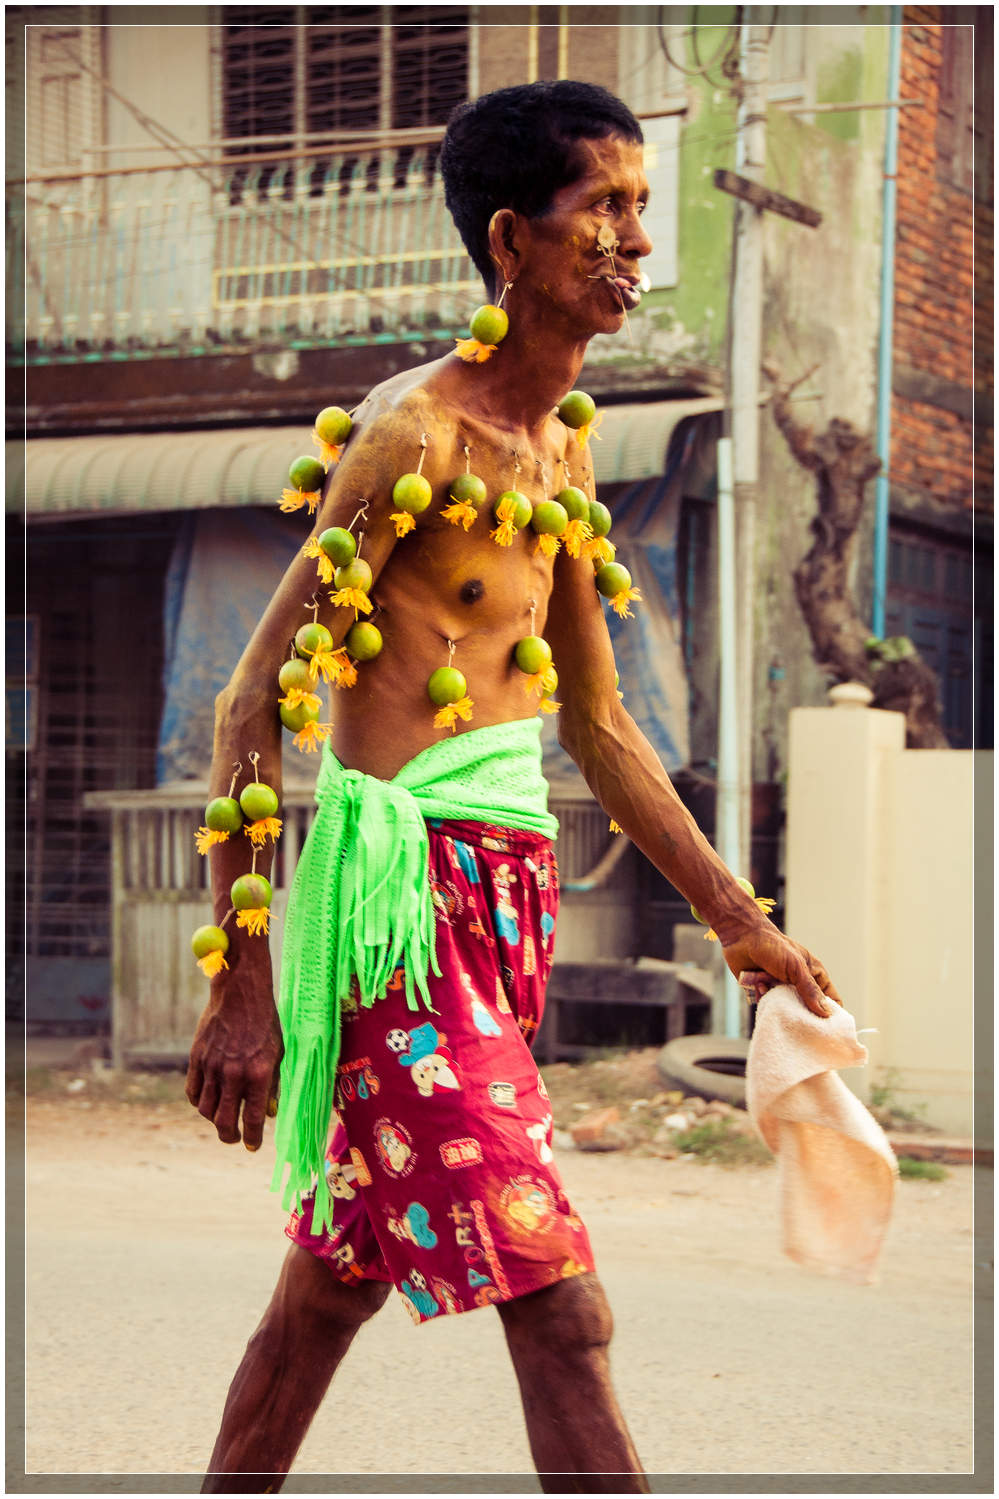 I was told that this man from the neighborhood has few belongings, but has faith that runs deep.  His body had over two dozen limes hanging from metal hooks in his skin.  © Dustin Main 2013